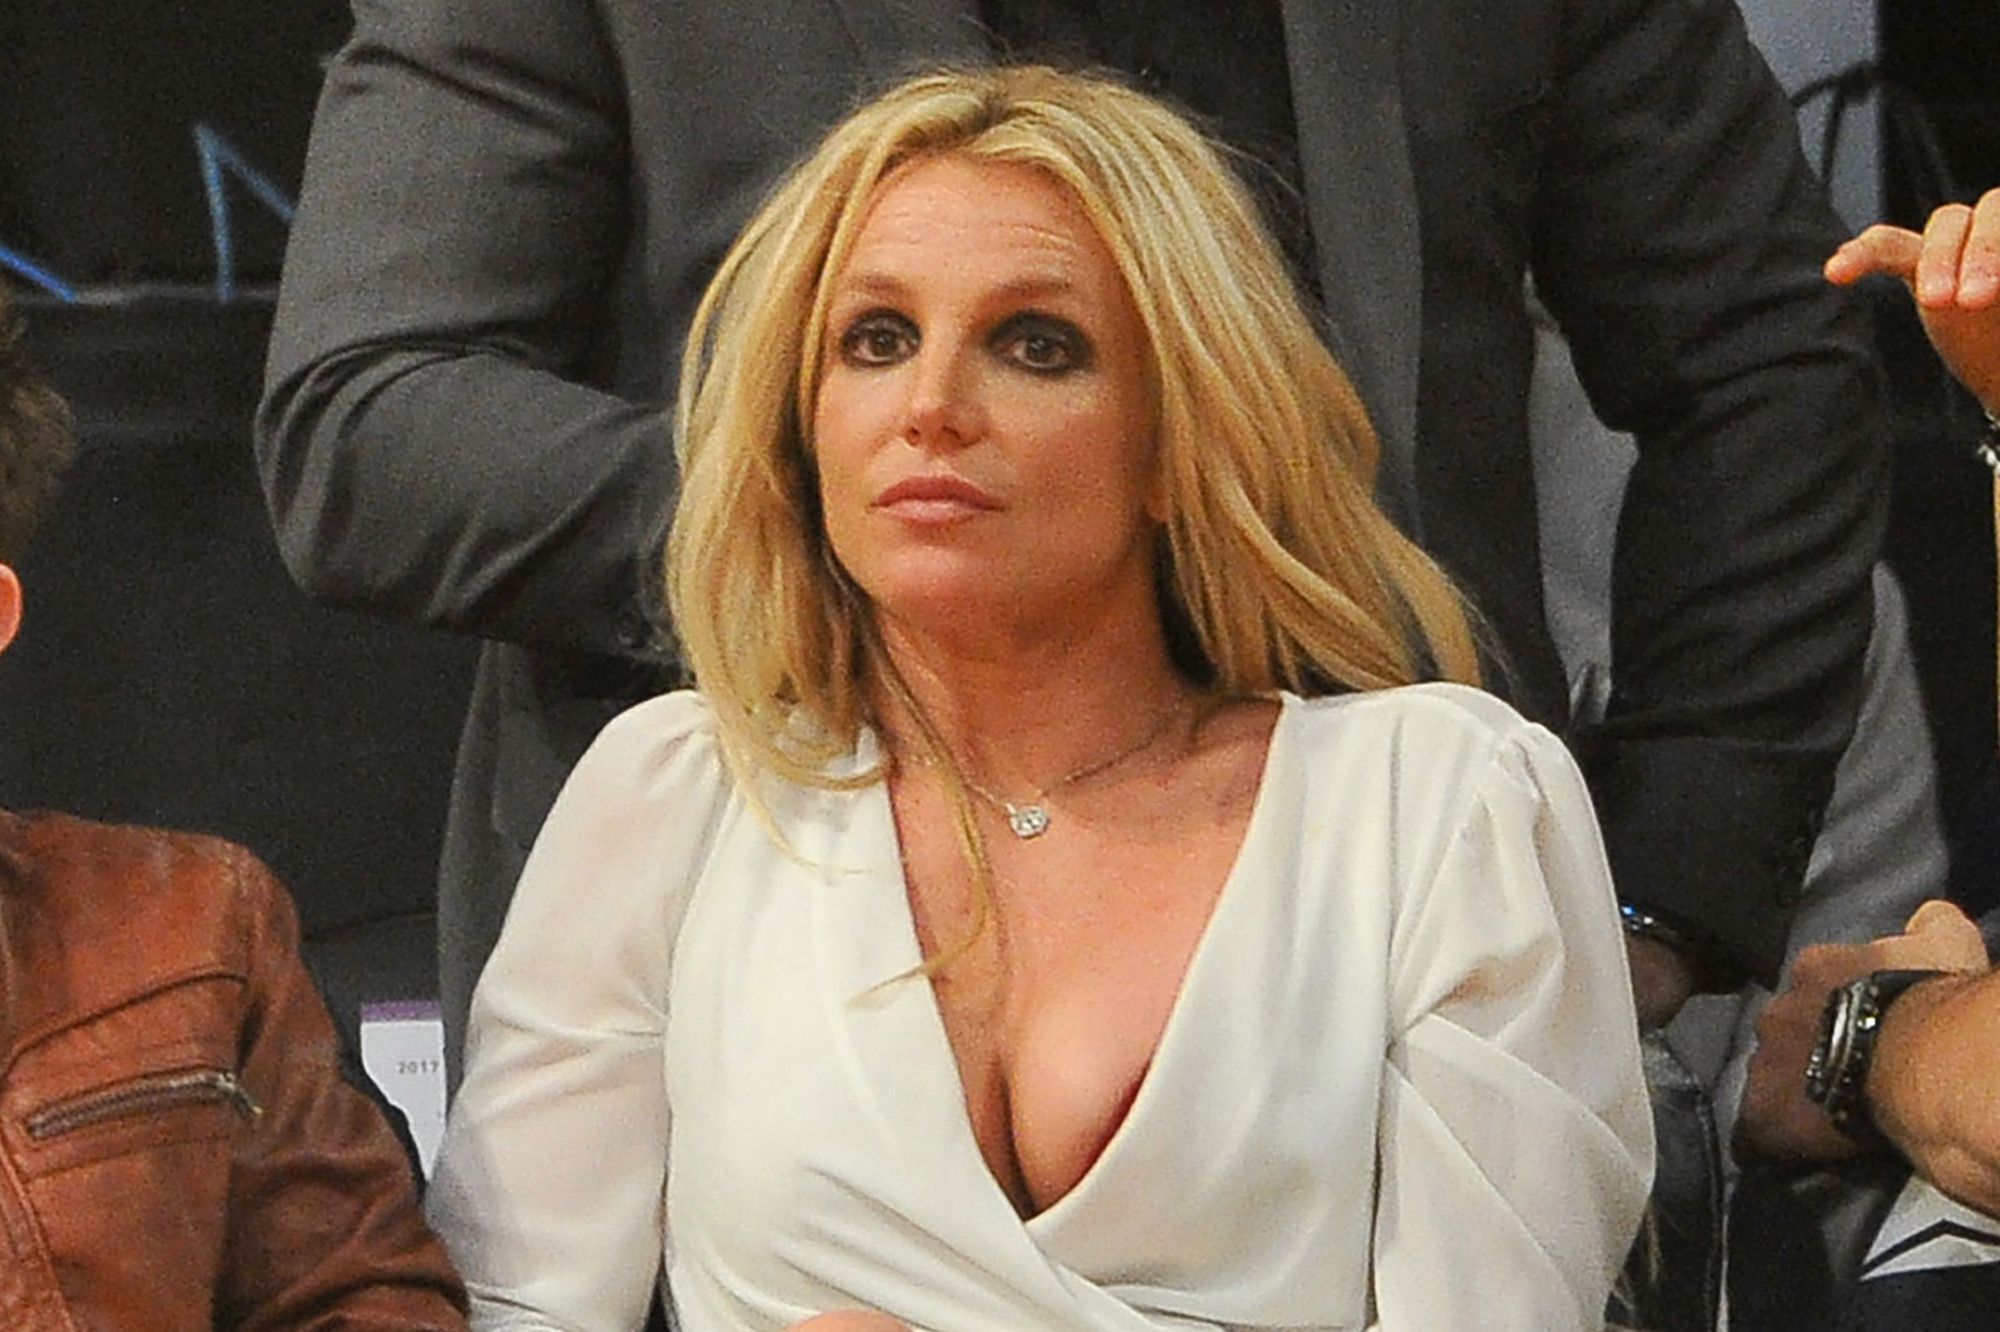 Is Britney Spears pregnant and 'ballooning'?